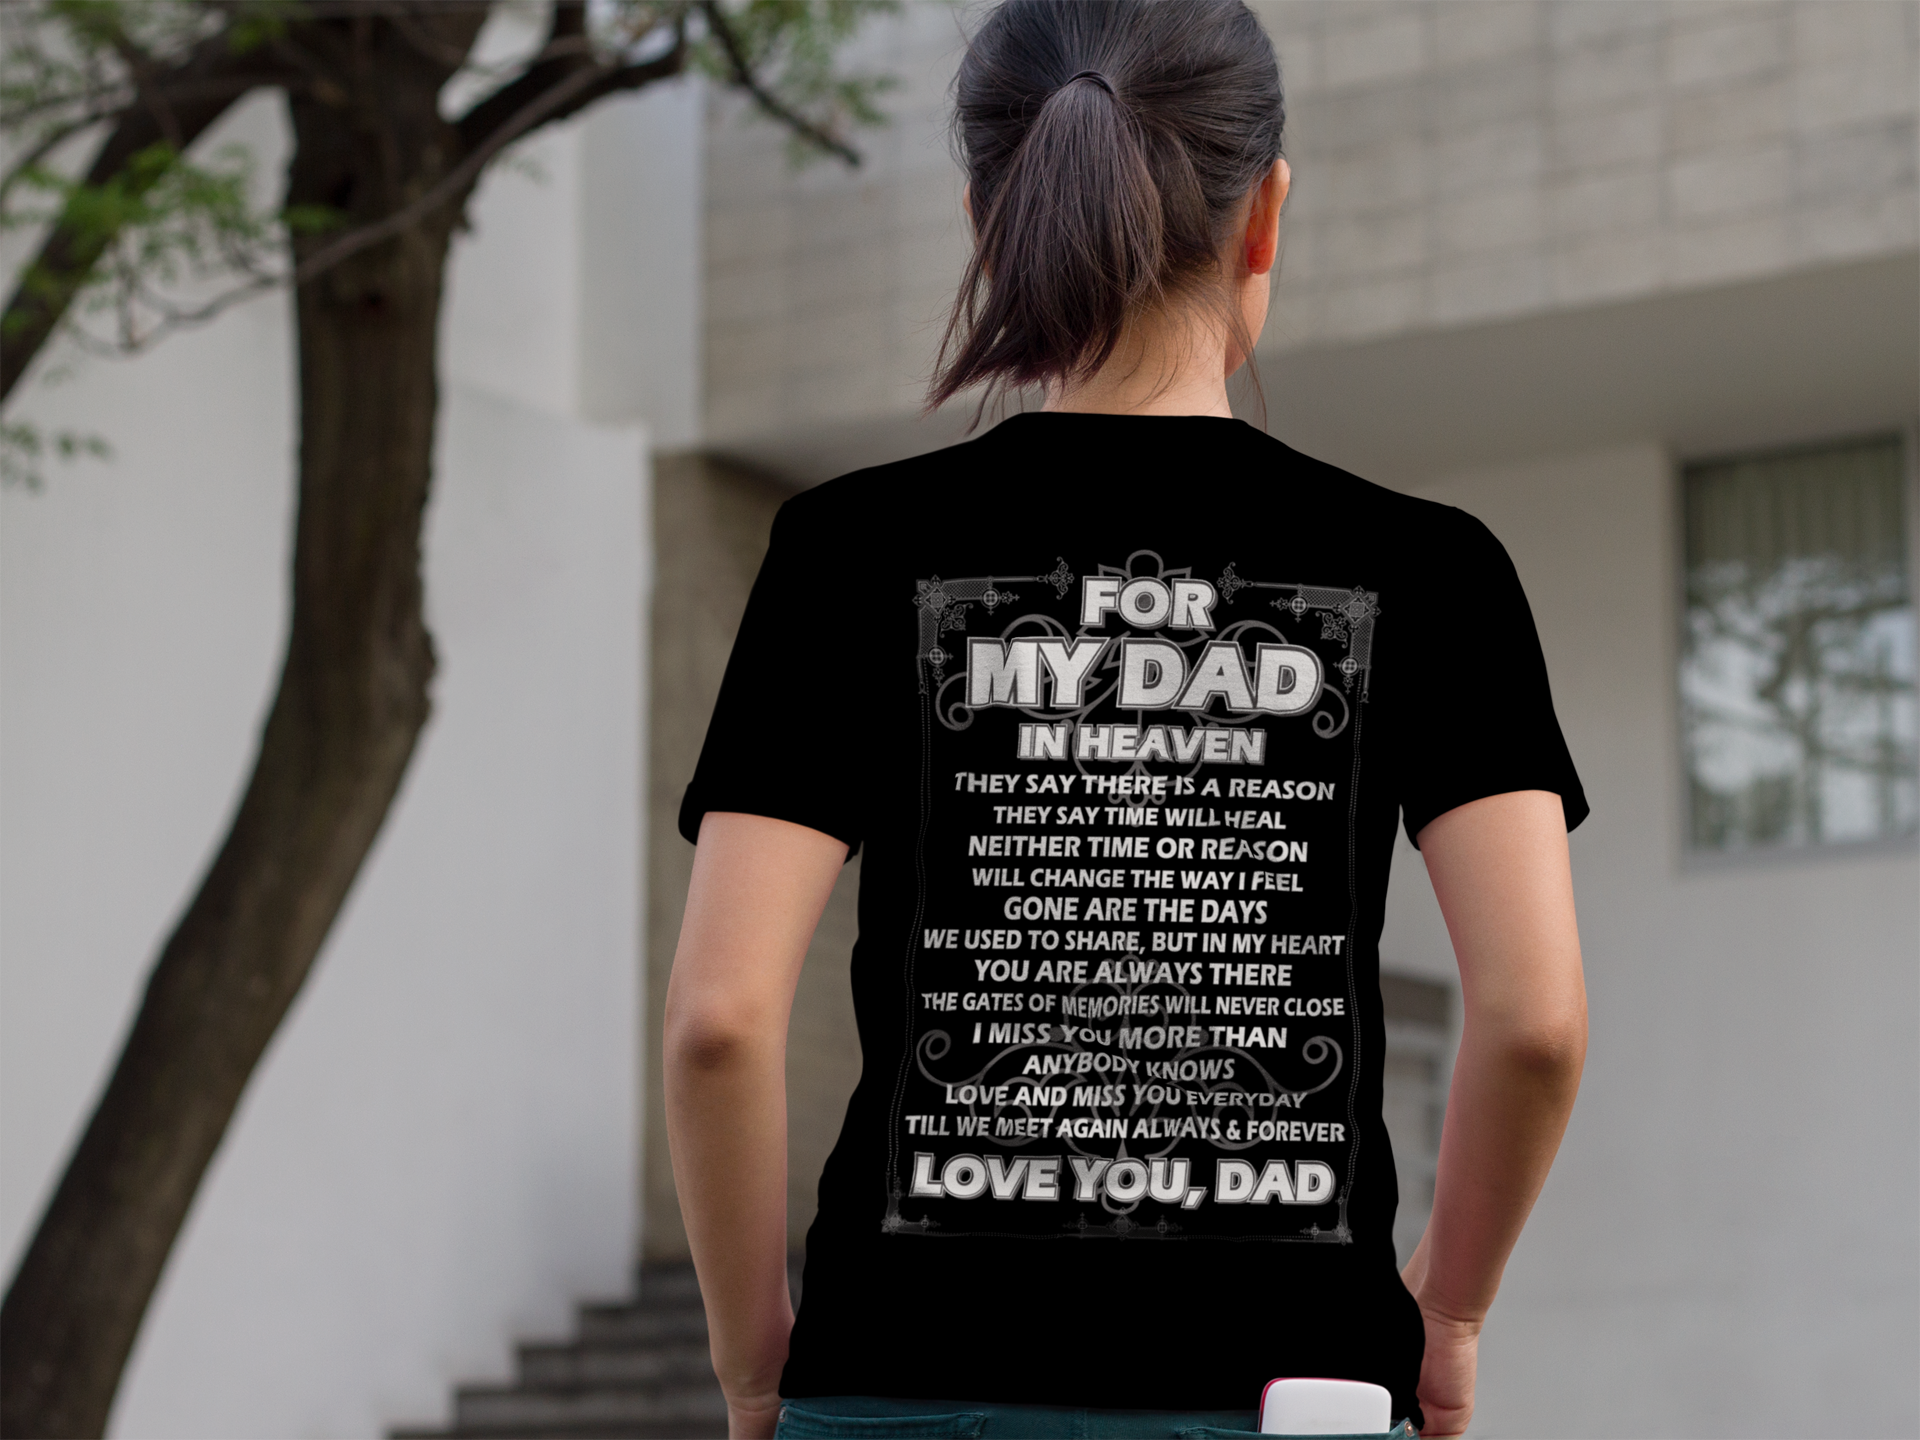 8b813a2e Fathers Day Memorial TShirts | Teespring Dad in Heaven Shirt, Memorial  Tshirt, Dad Gift, Fathers Day, RIP Shirt, Memorial Shirt, RIP Dad Shirt,  Gifts for ...